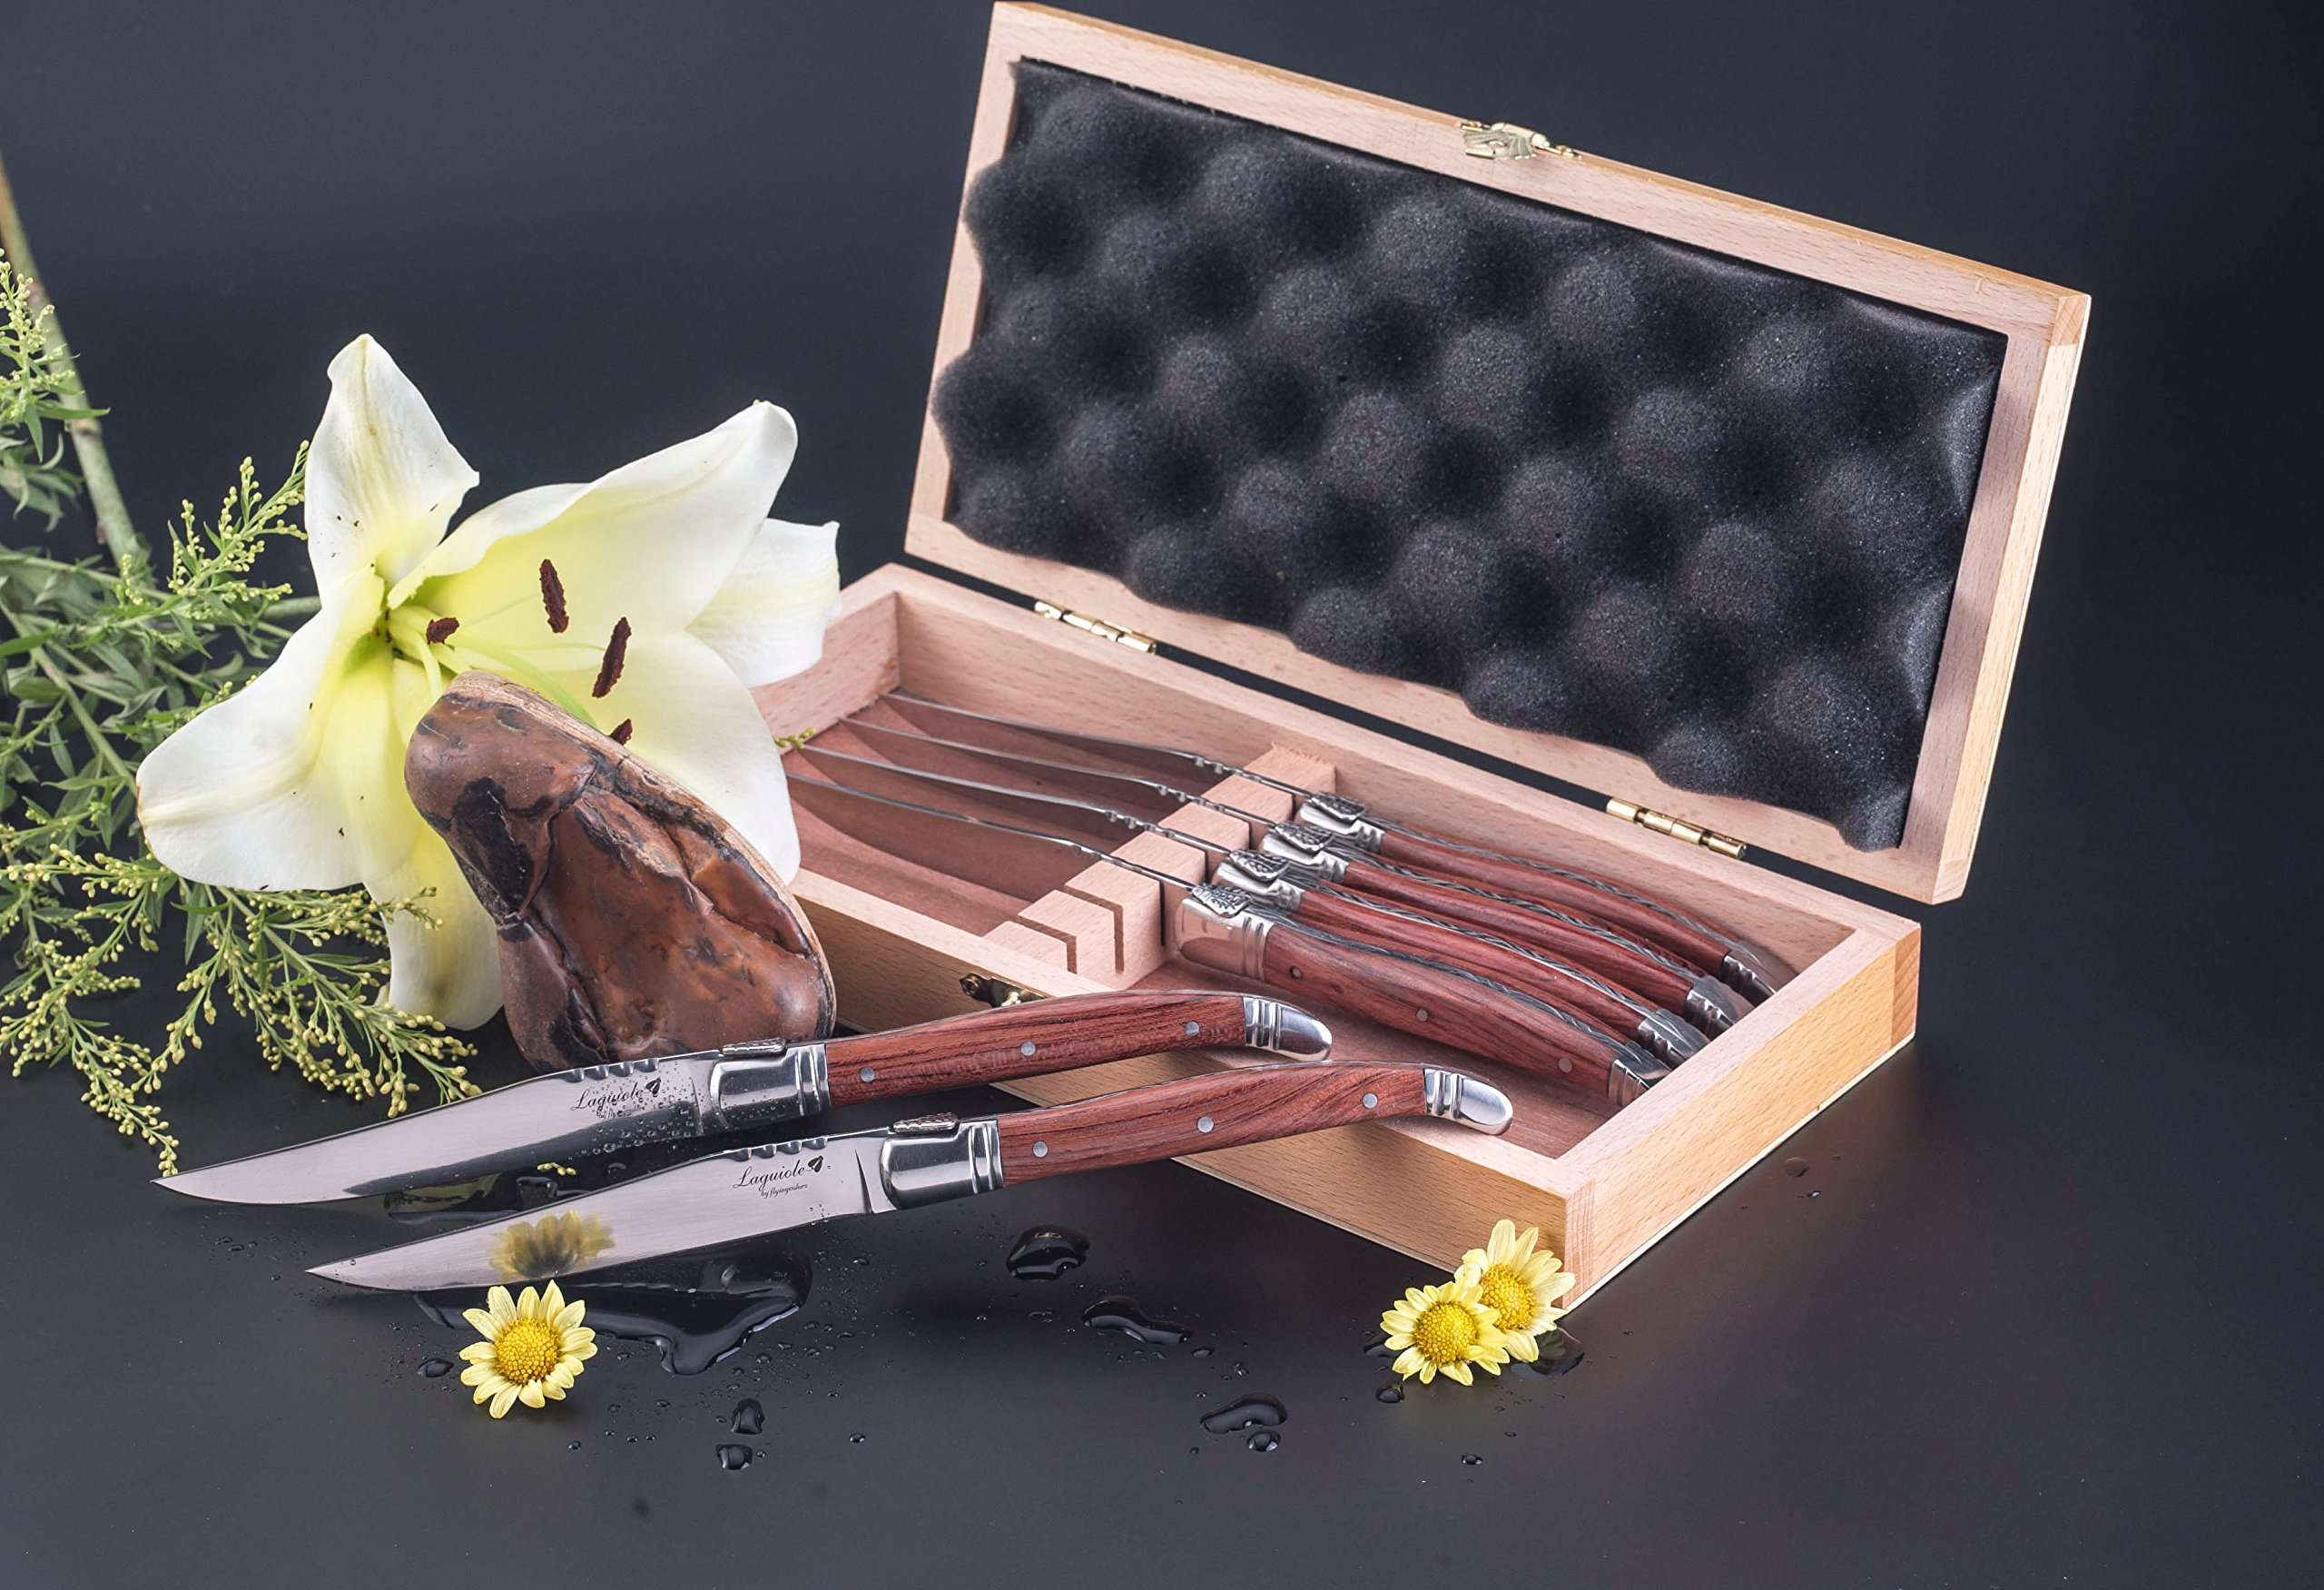 FlyingColors Laguiole Steak Knife. Stainless Steel, Rose Wood Handle, Wooden Gift Box, 6 Piece by LAGUIOLE BY FLYINGCOLORS (Image #3)